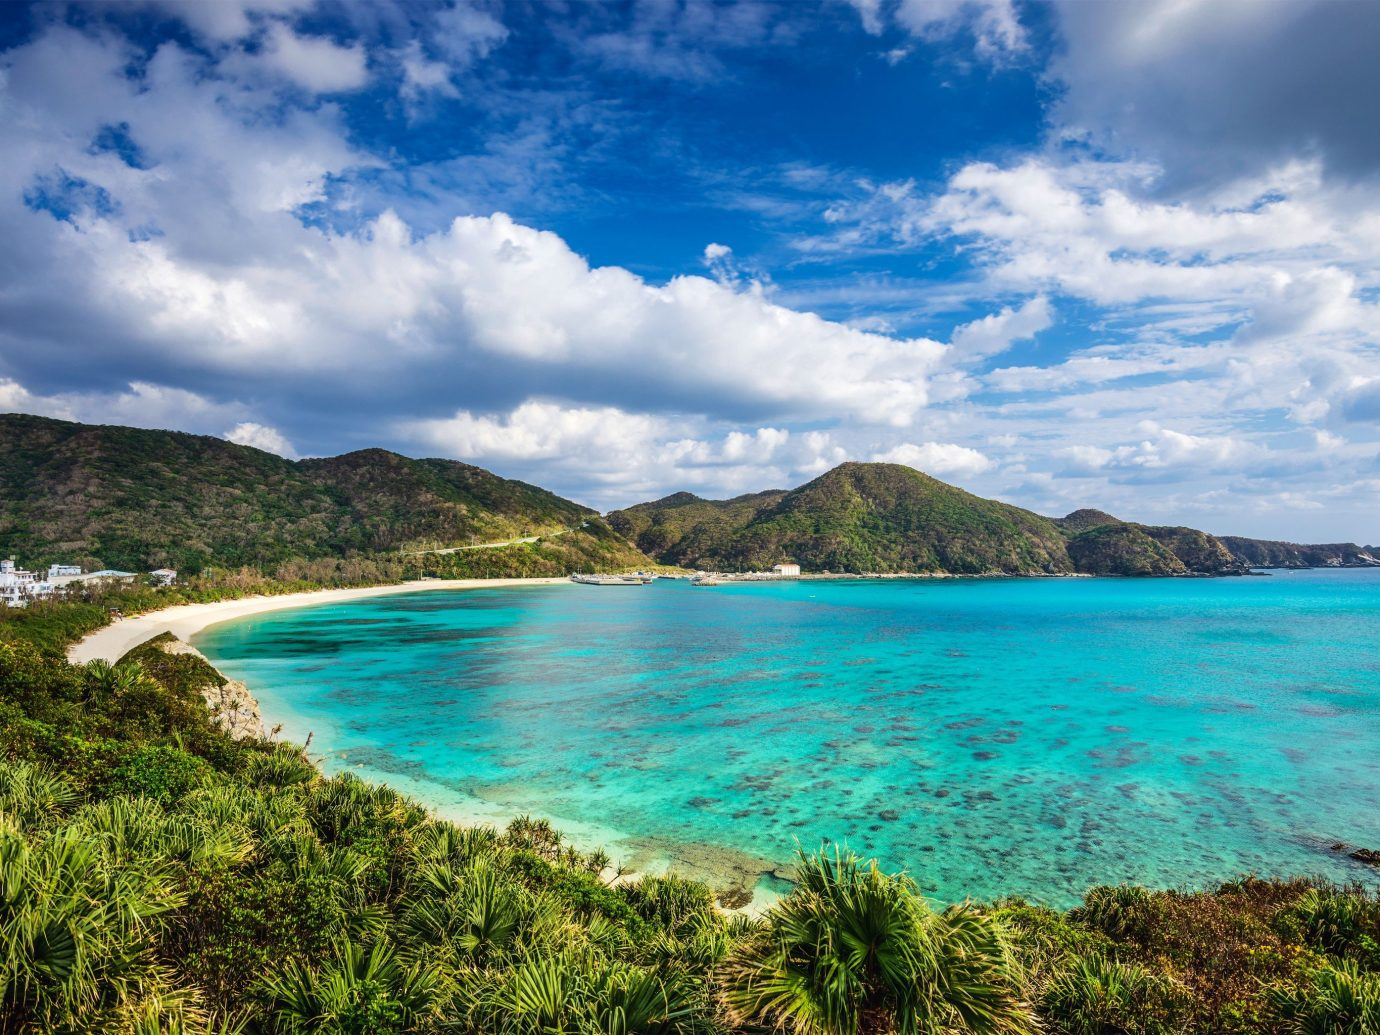 Trip Ideas sky water outdoor Nature geographical feature landform blue Sea reef body of water Coast mountain shore Ocean cloud horizon bay Lagoon vacation loch Beach Lake Island cove caribbean islet reservoir clouds overlooking swimming day